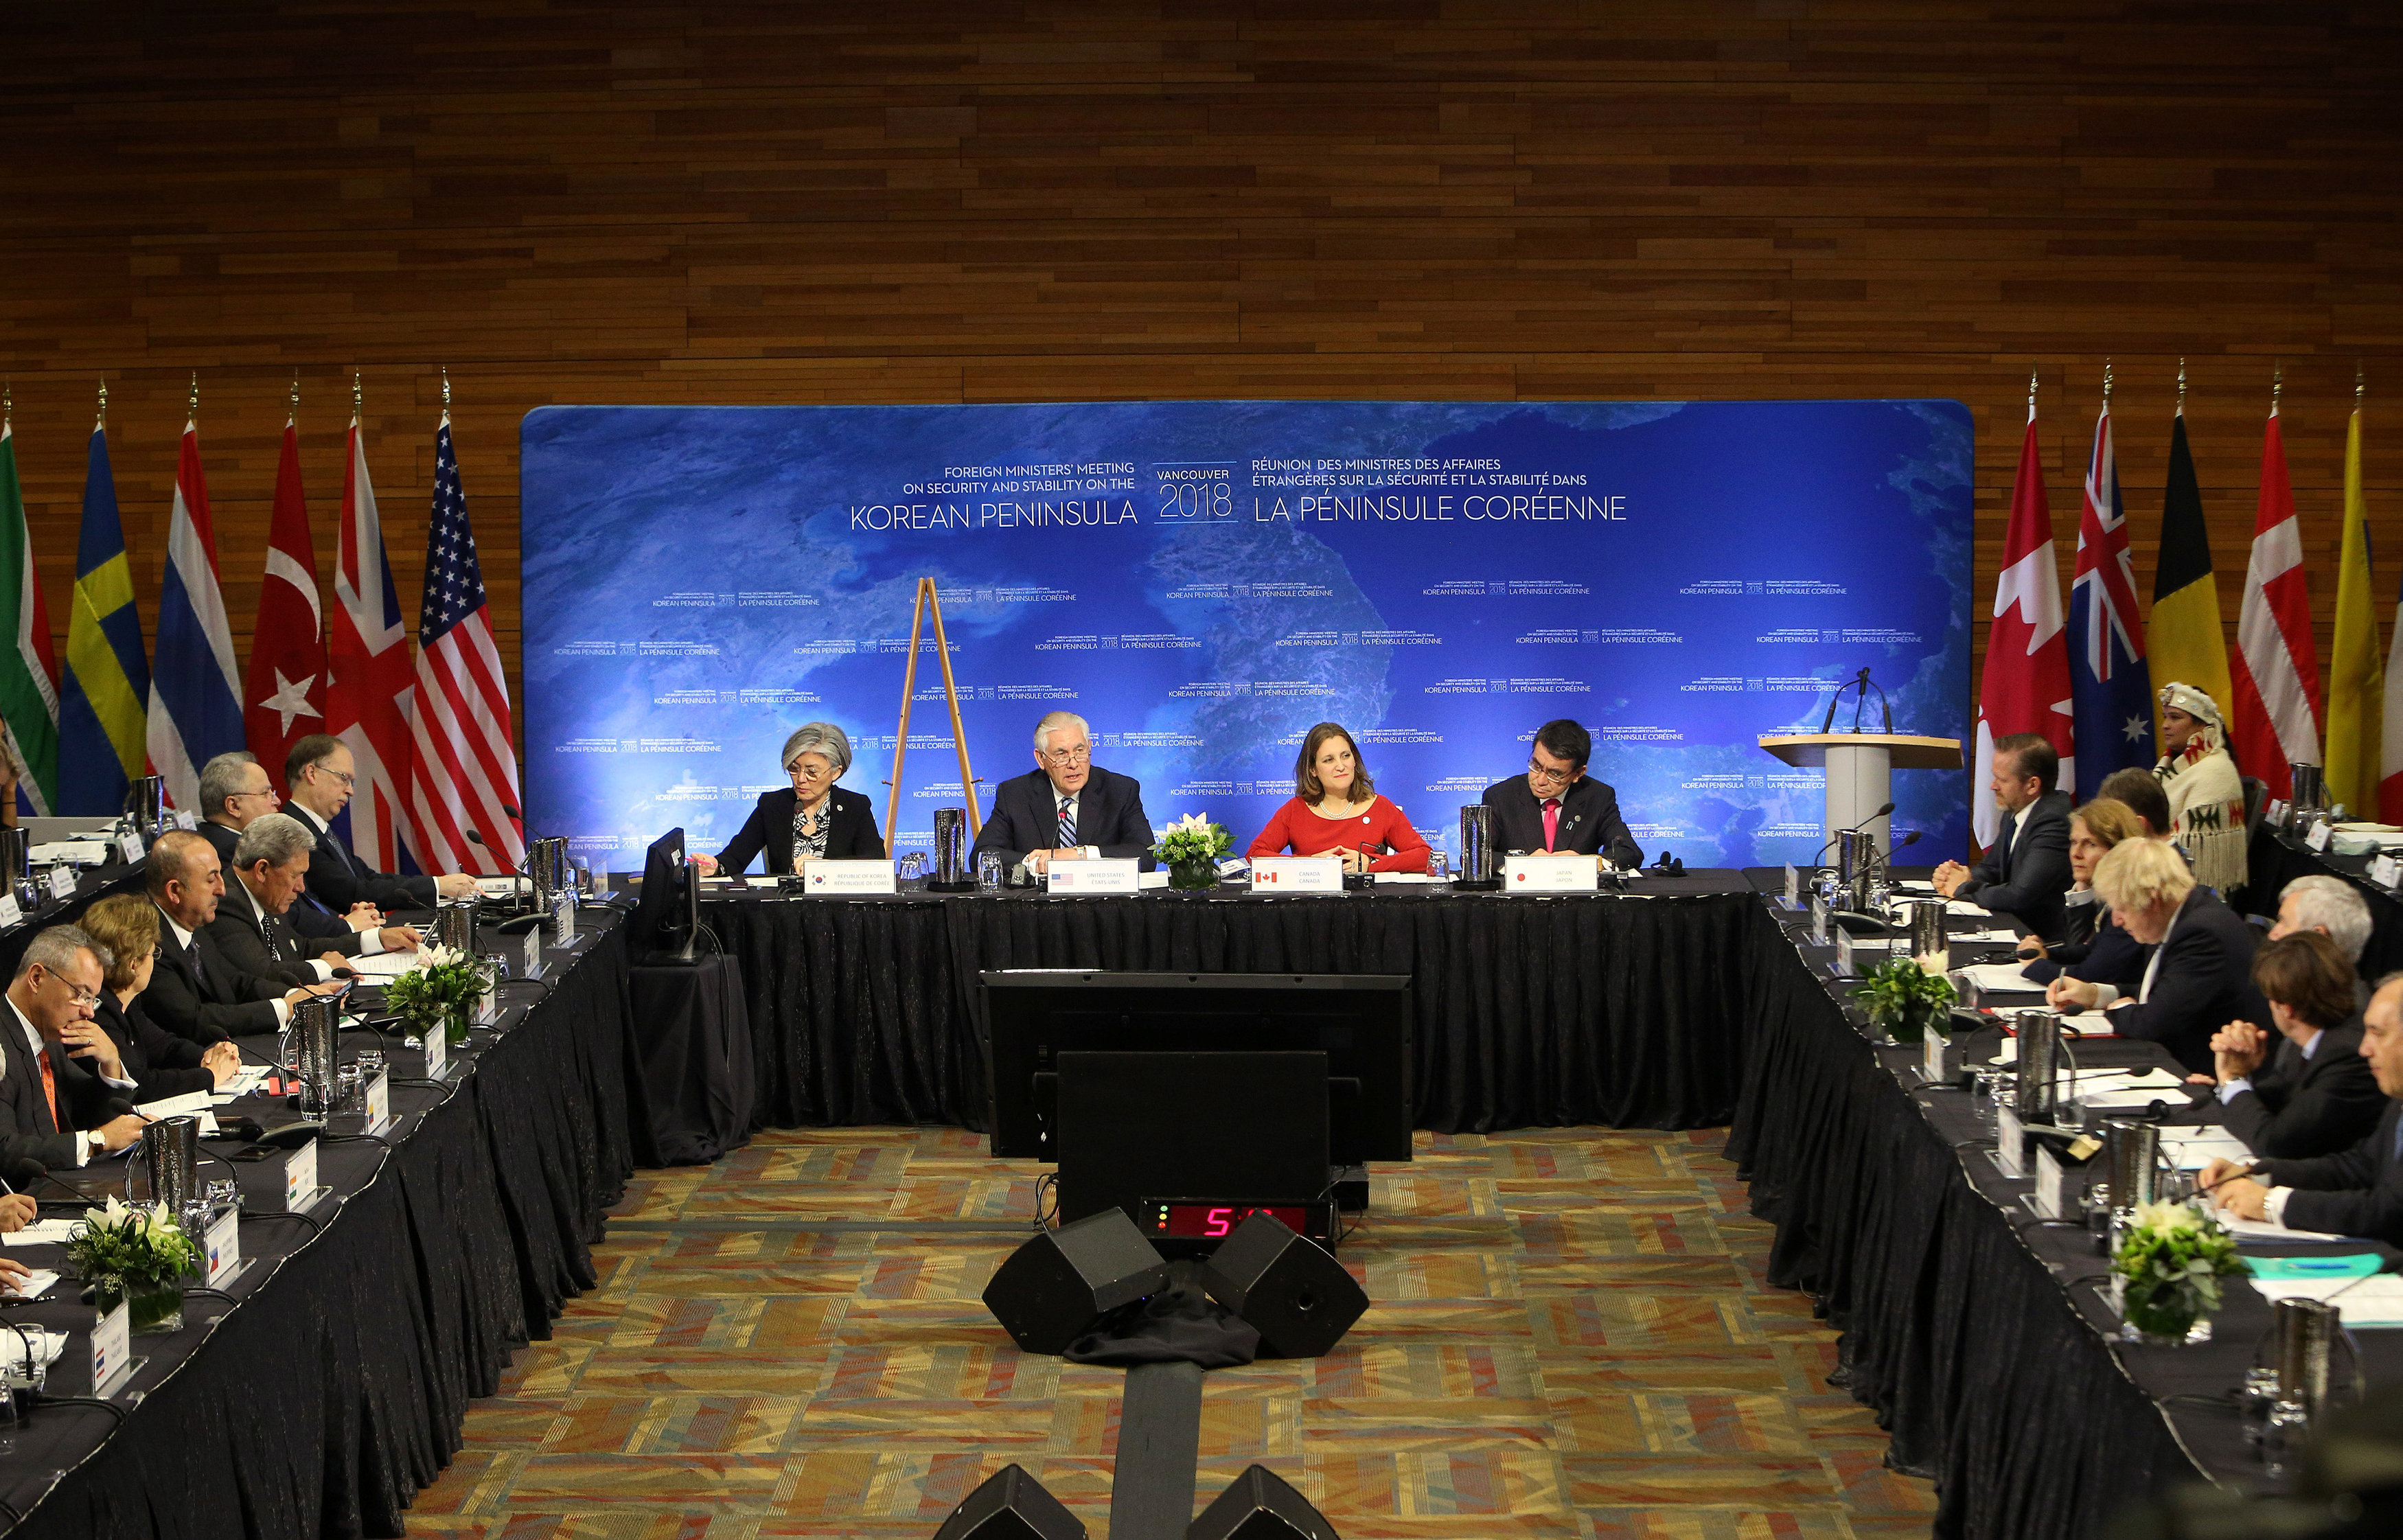 South Korean Minister of Foreign Affairs Kang Kyung-wha, U.S. Secretary of State Rex Tillerson, Canada's Minister of Foreign Affairs Chrystia Freeland and Japan's Minister of Foreign Affairs Taro Kono are seen during the Foreign Ministers' Meeting on Security and Stability on the Korean Peninsula in Vancouver, British Columbia, Canada January 16, 2018.